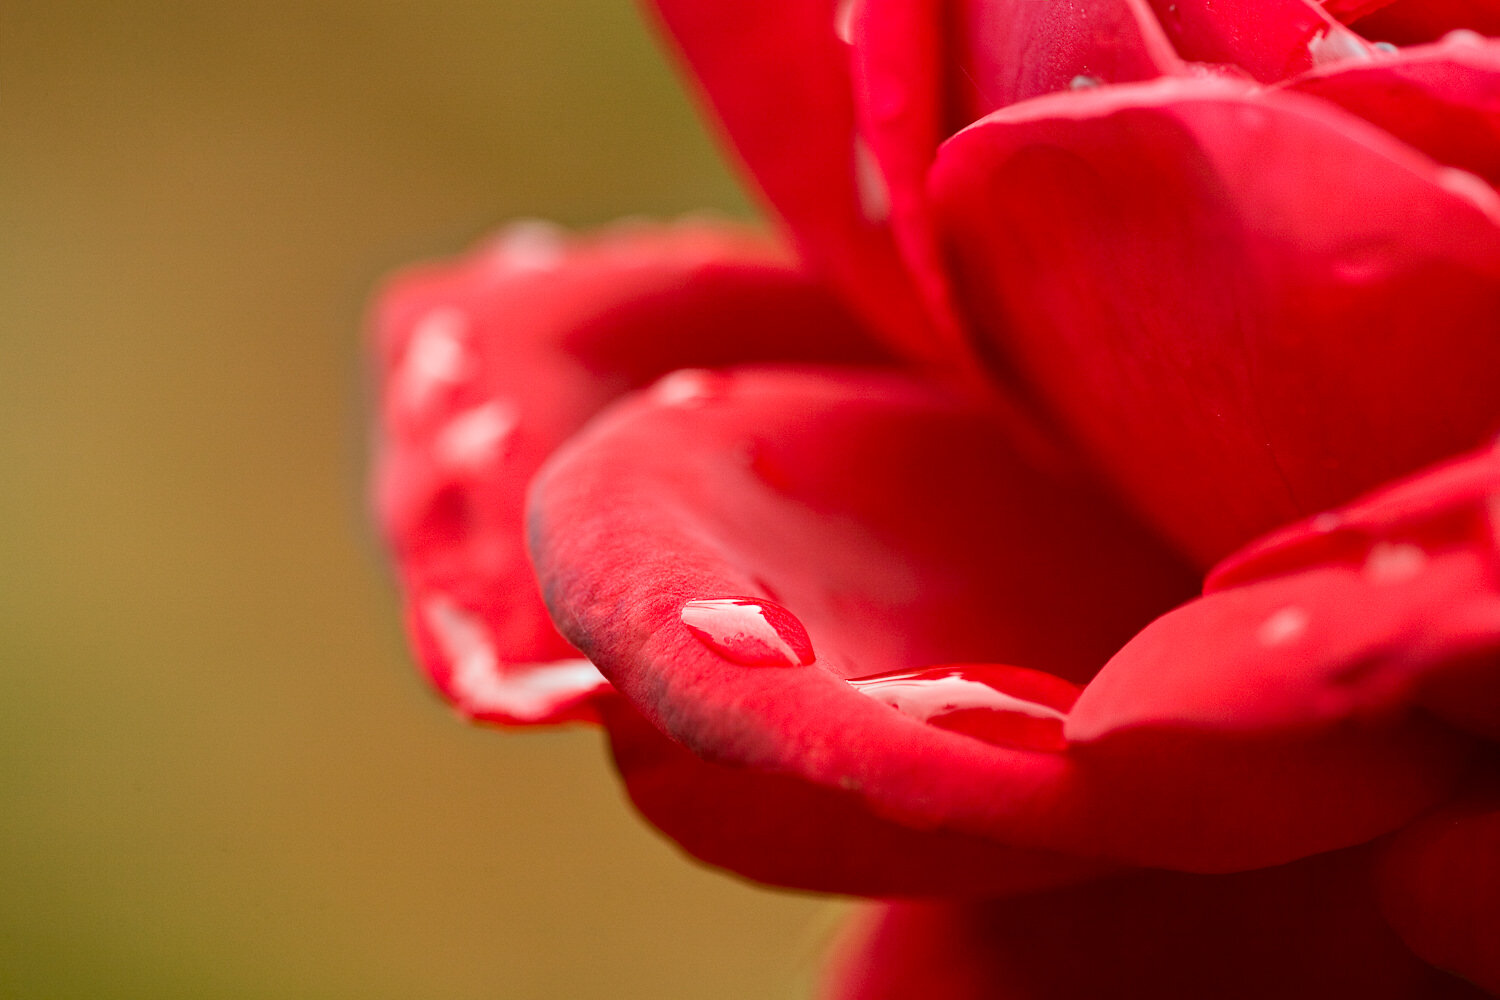 Extremely    shallow depth of field    featuring rain drops on a red rose.